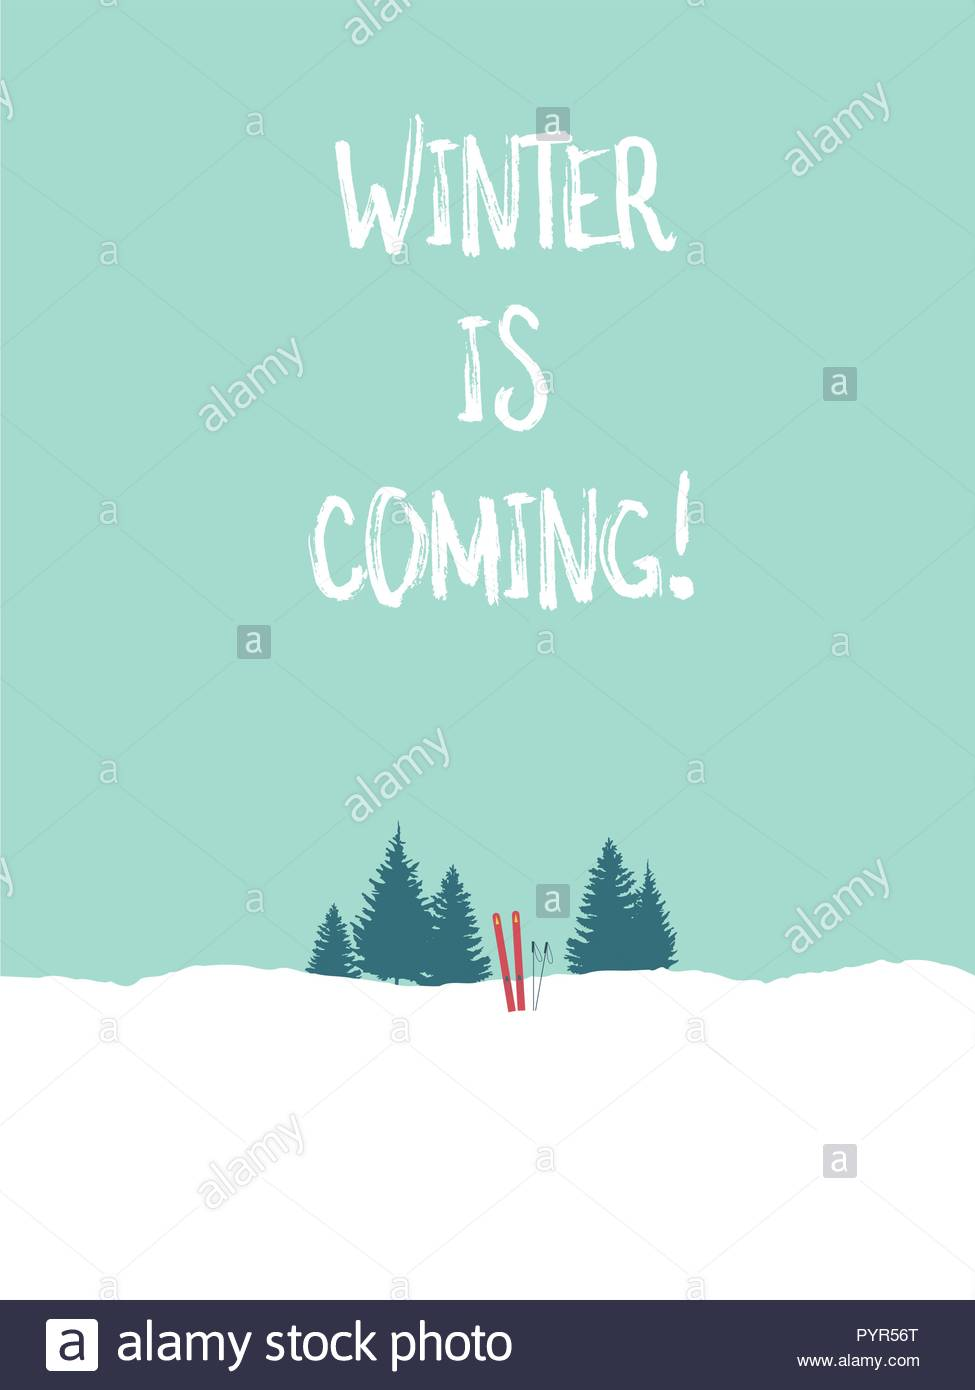 Winter postcard vector template with skis in the snow and minimalist landscape. Winter holiday or vacation banner. eps10 vector illustration. - Stock Vector